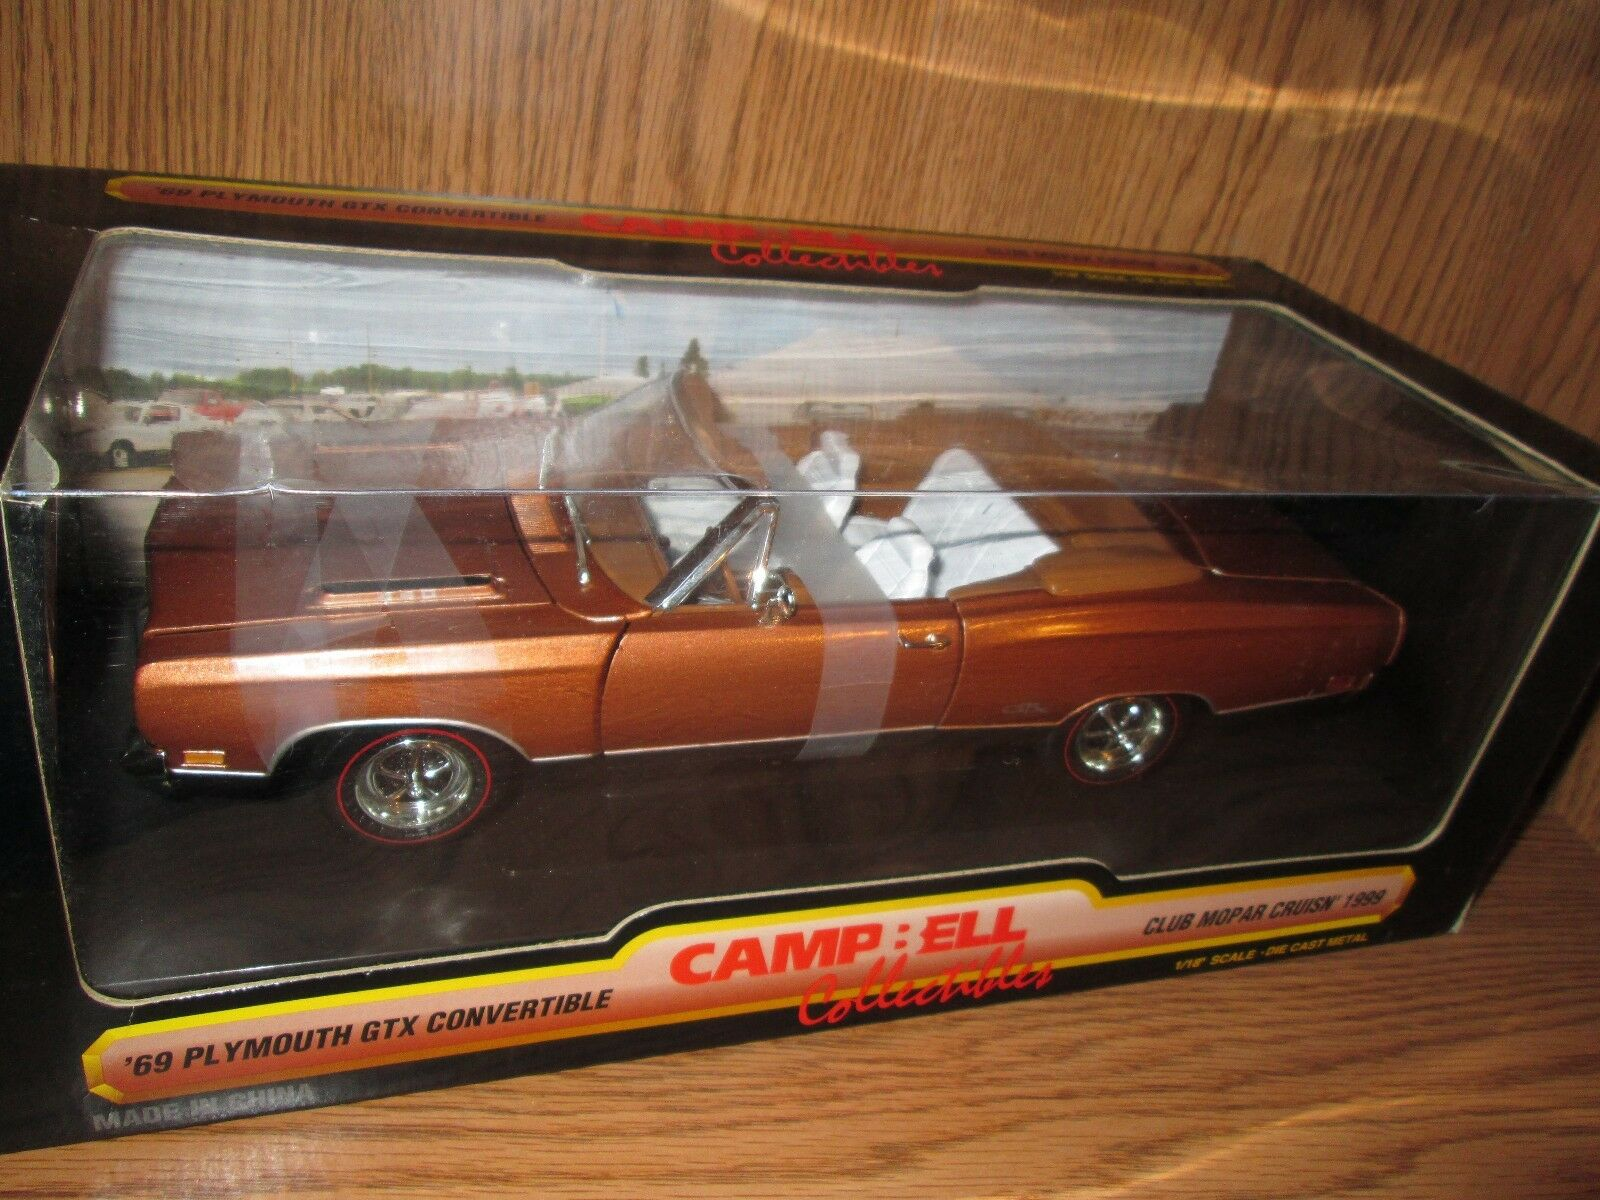 69 plymouth GTX convertible club MOPAR campbells  american muscle 1/18 1999